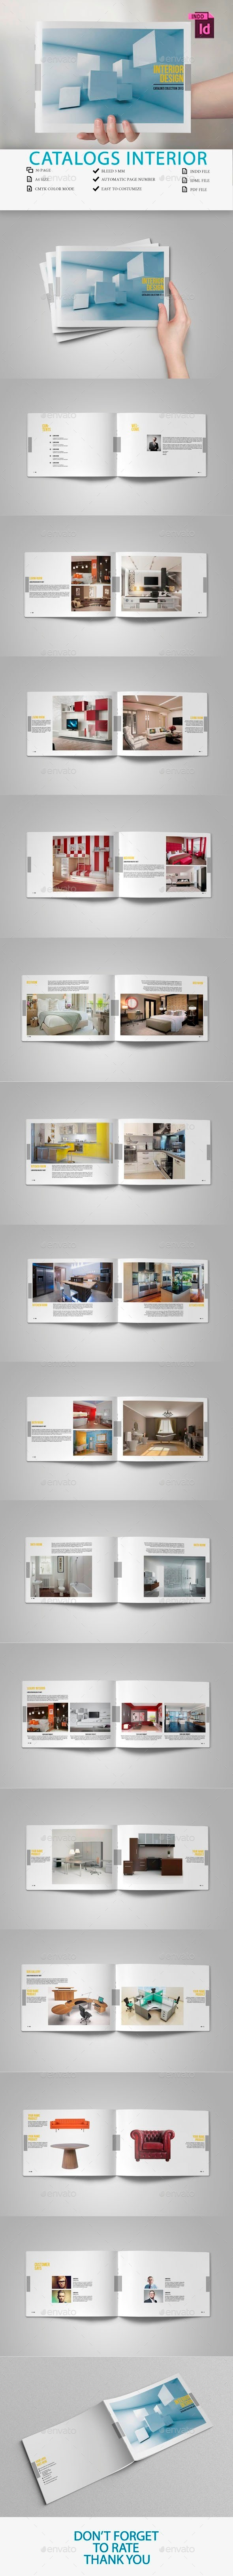 GraphicRiver Catalogs Interior Brochure 10867275